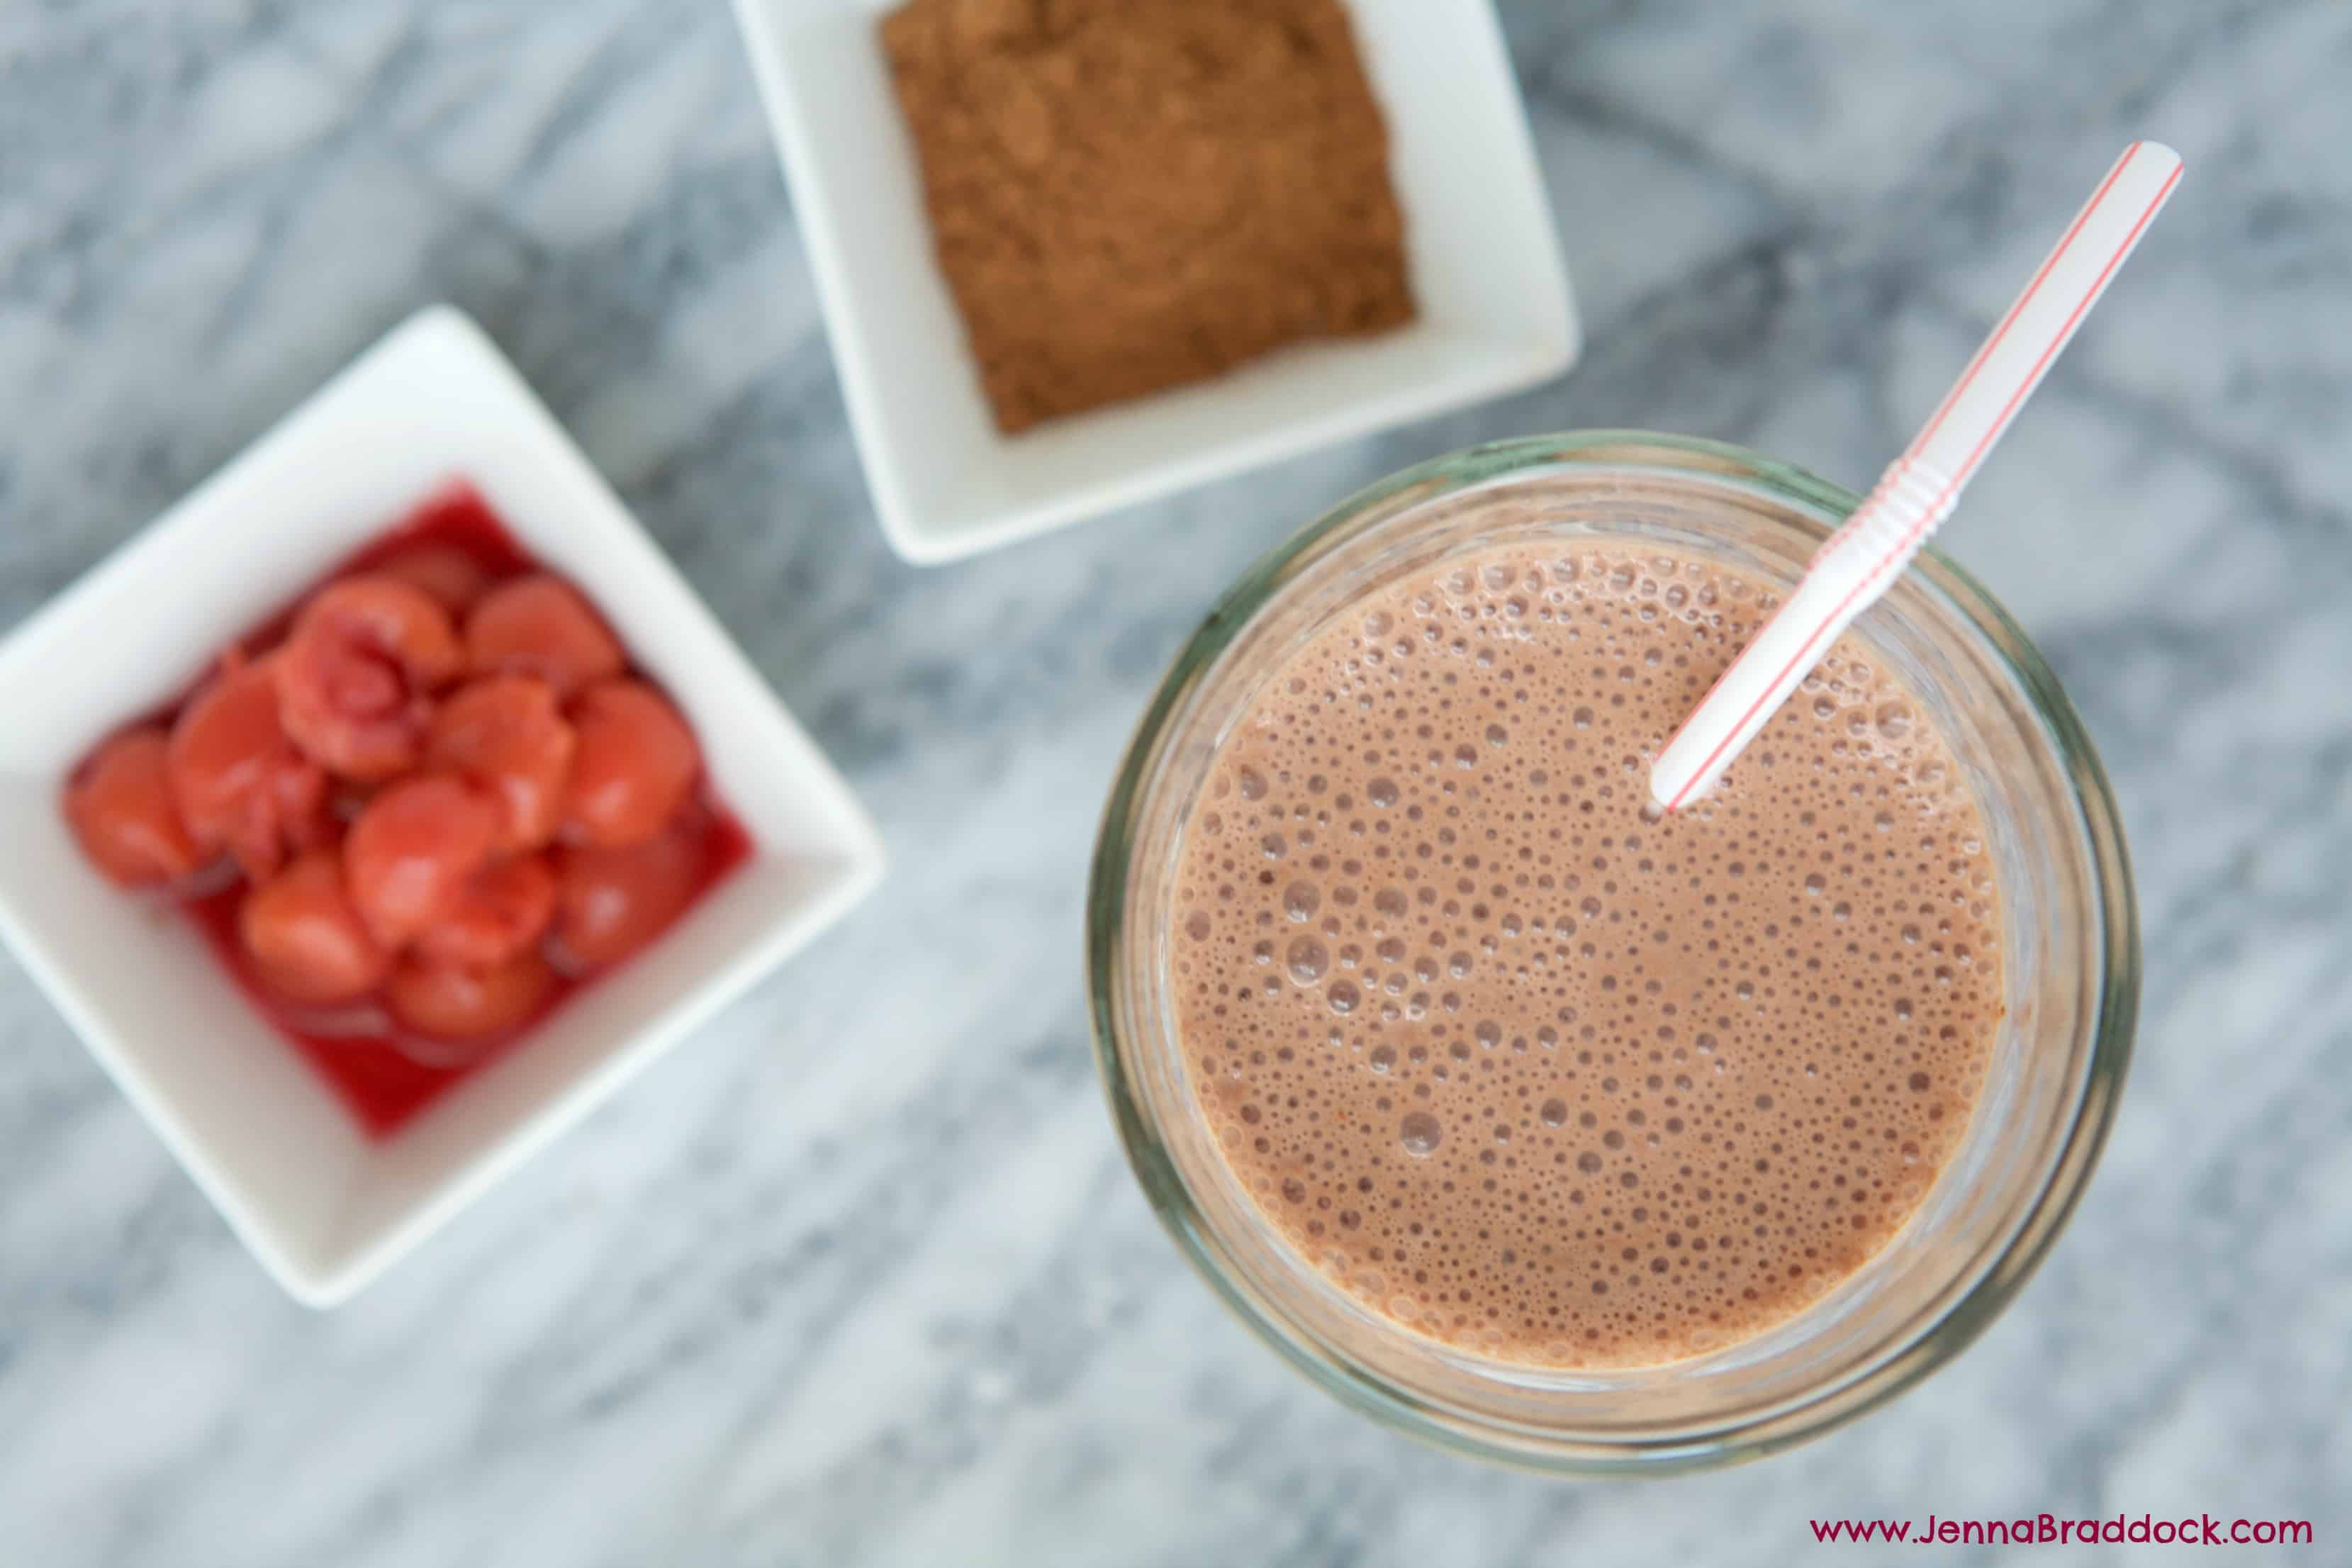 Tart Cherry Recovery Smoothie